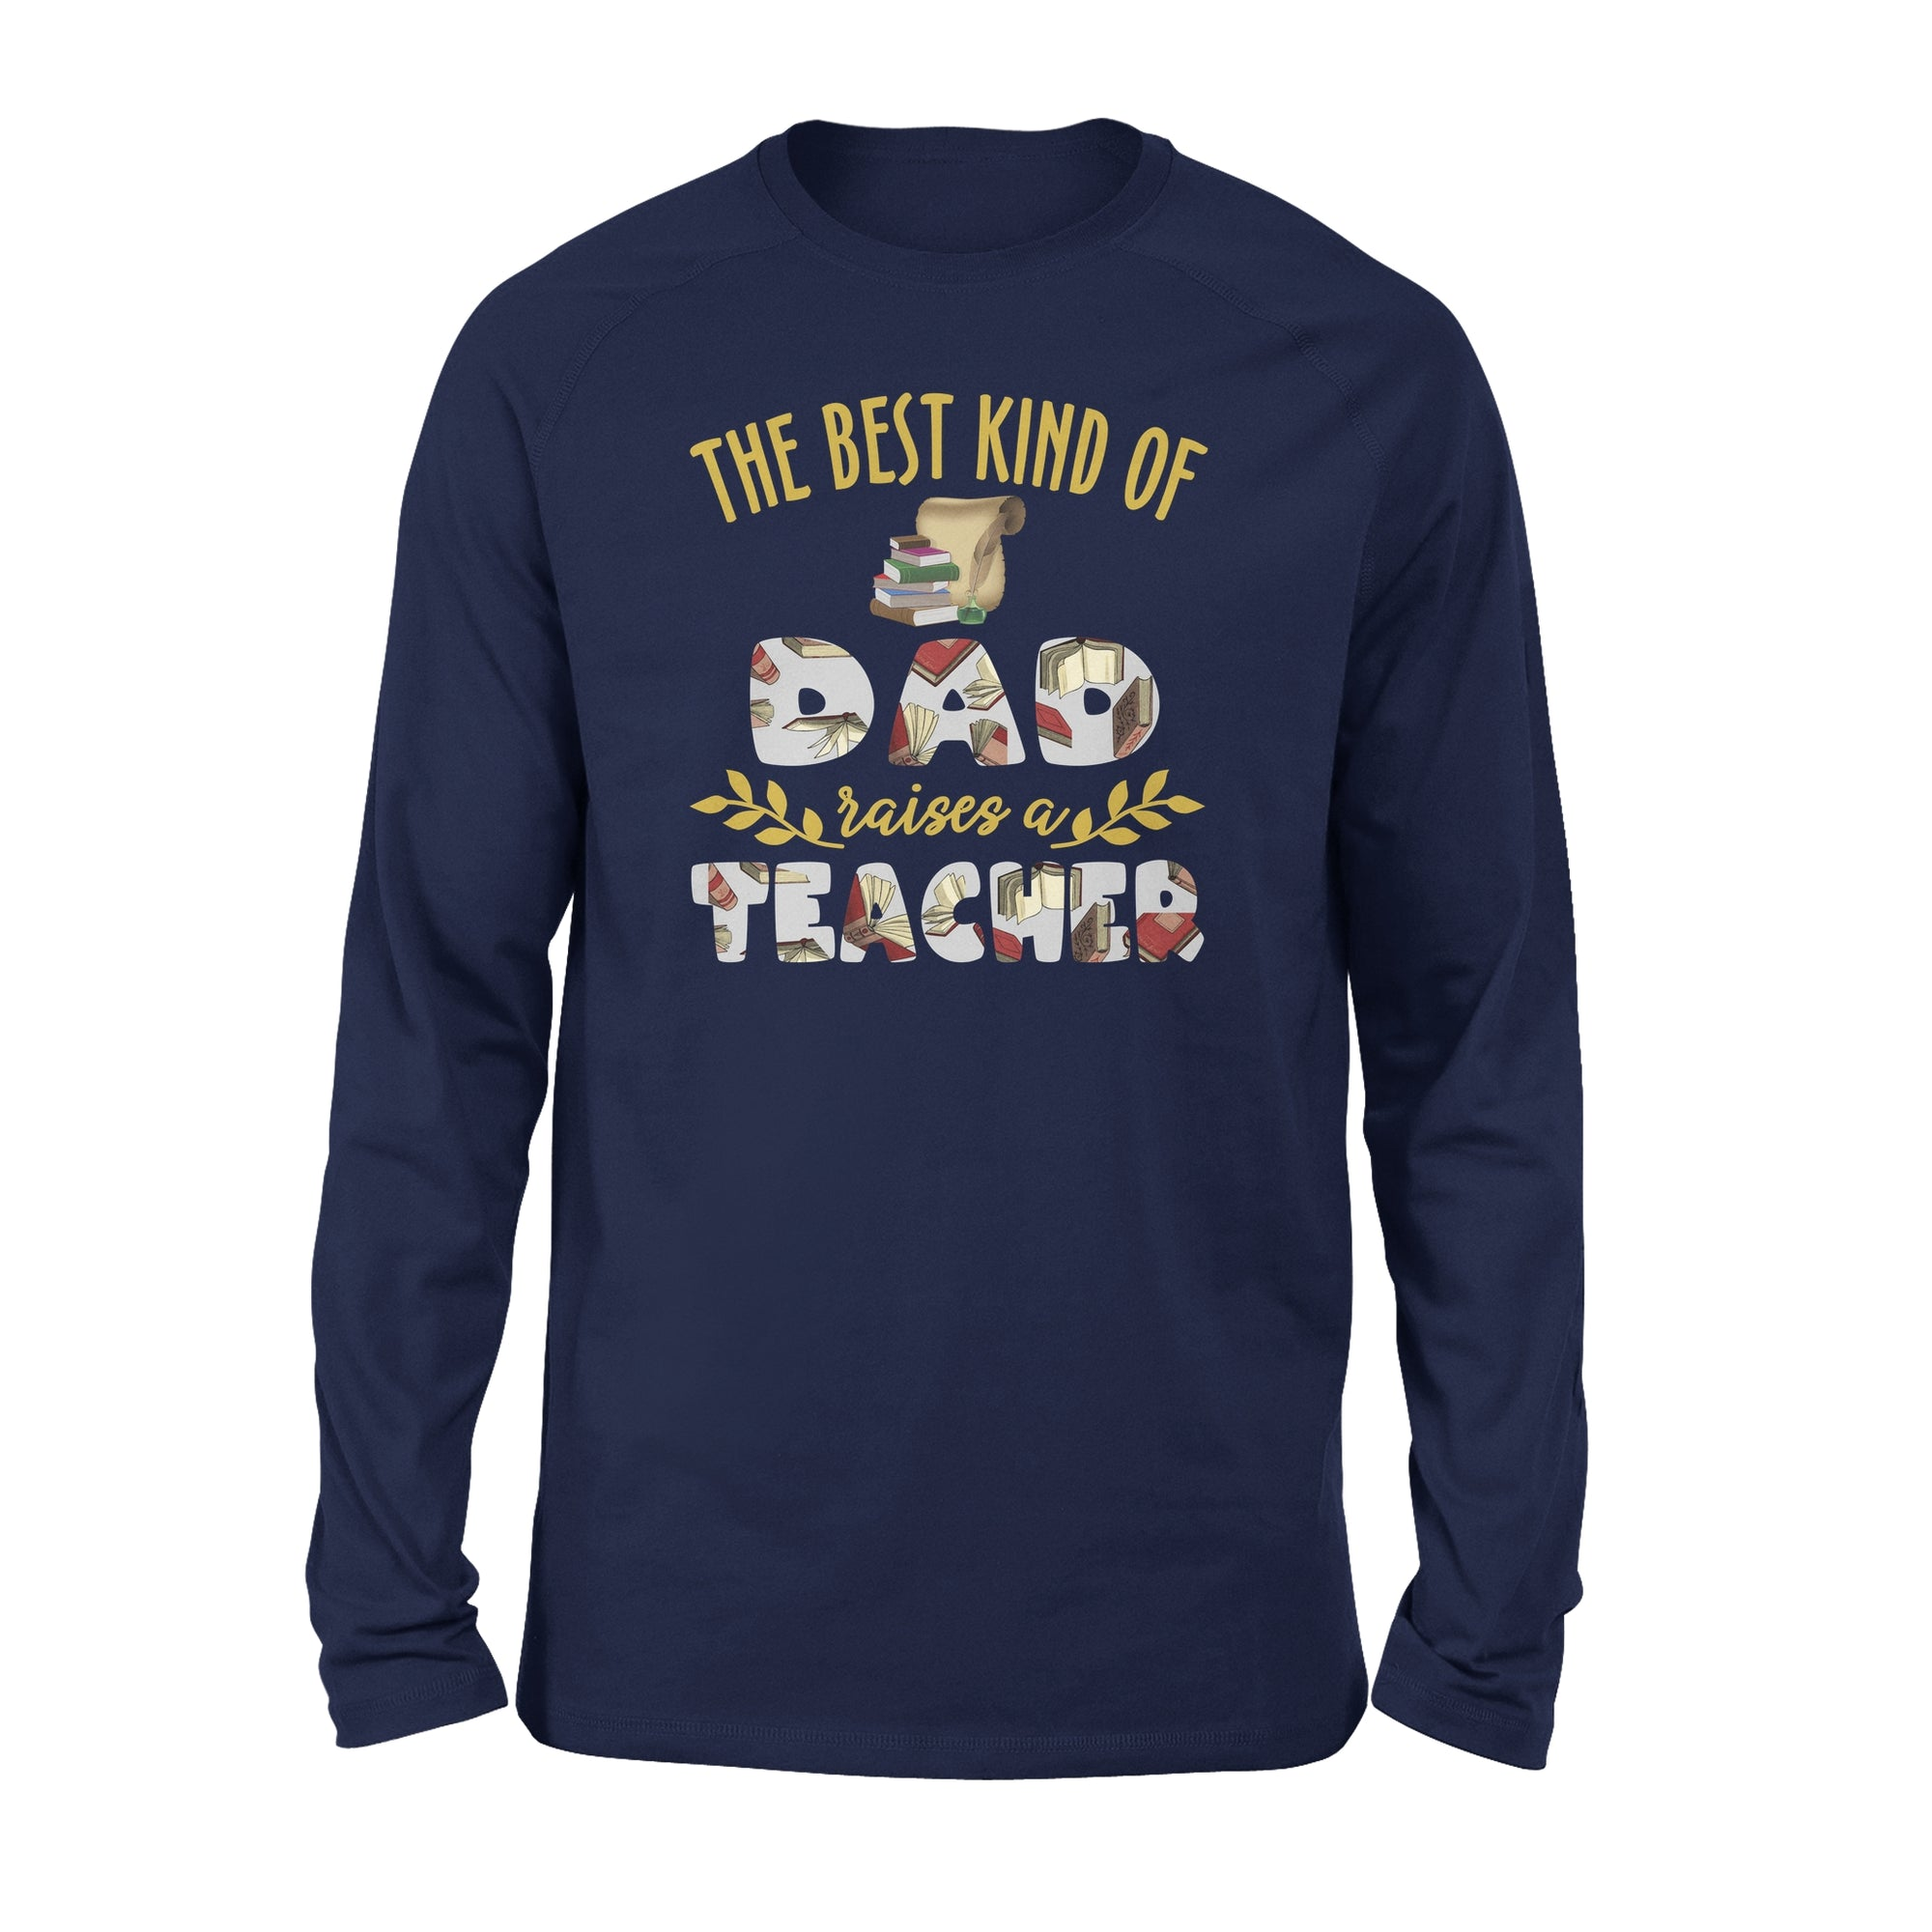 VIRA Premium Long Sleeve for awesome teachers & dads